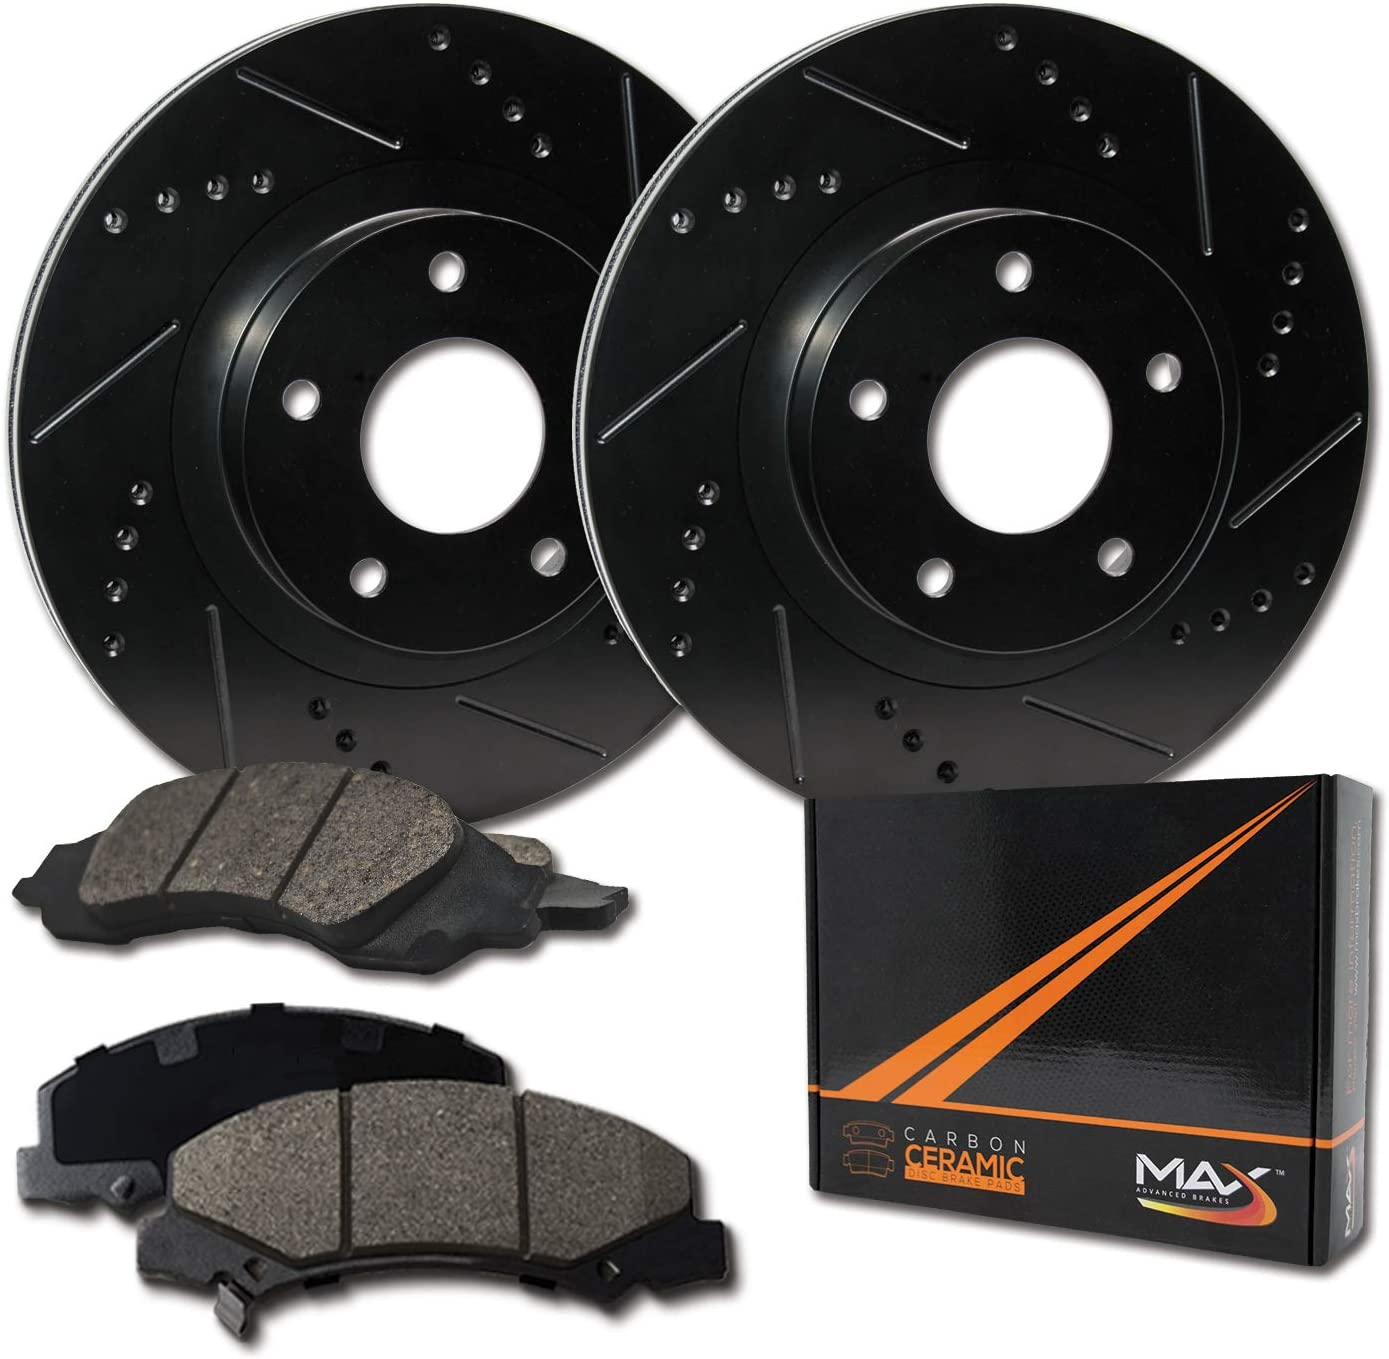 KT002621 Fits: Toyota 1995-1997 Avalon 1992-1996 Camry 1998-2003 Sienna Lexus 1992-1996 ES300 Max Brakes Front Performance Brake Kit Premium Cross Drilled Rotors + Ceramic Pads